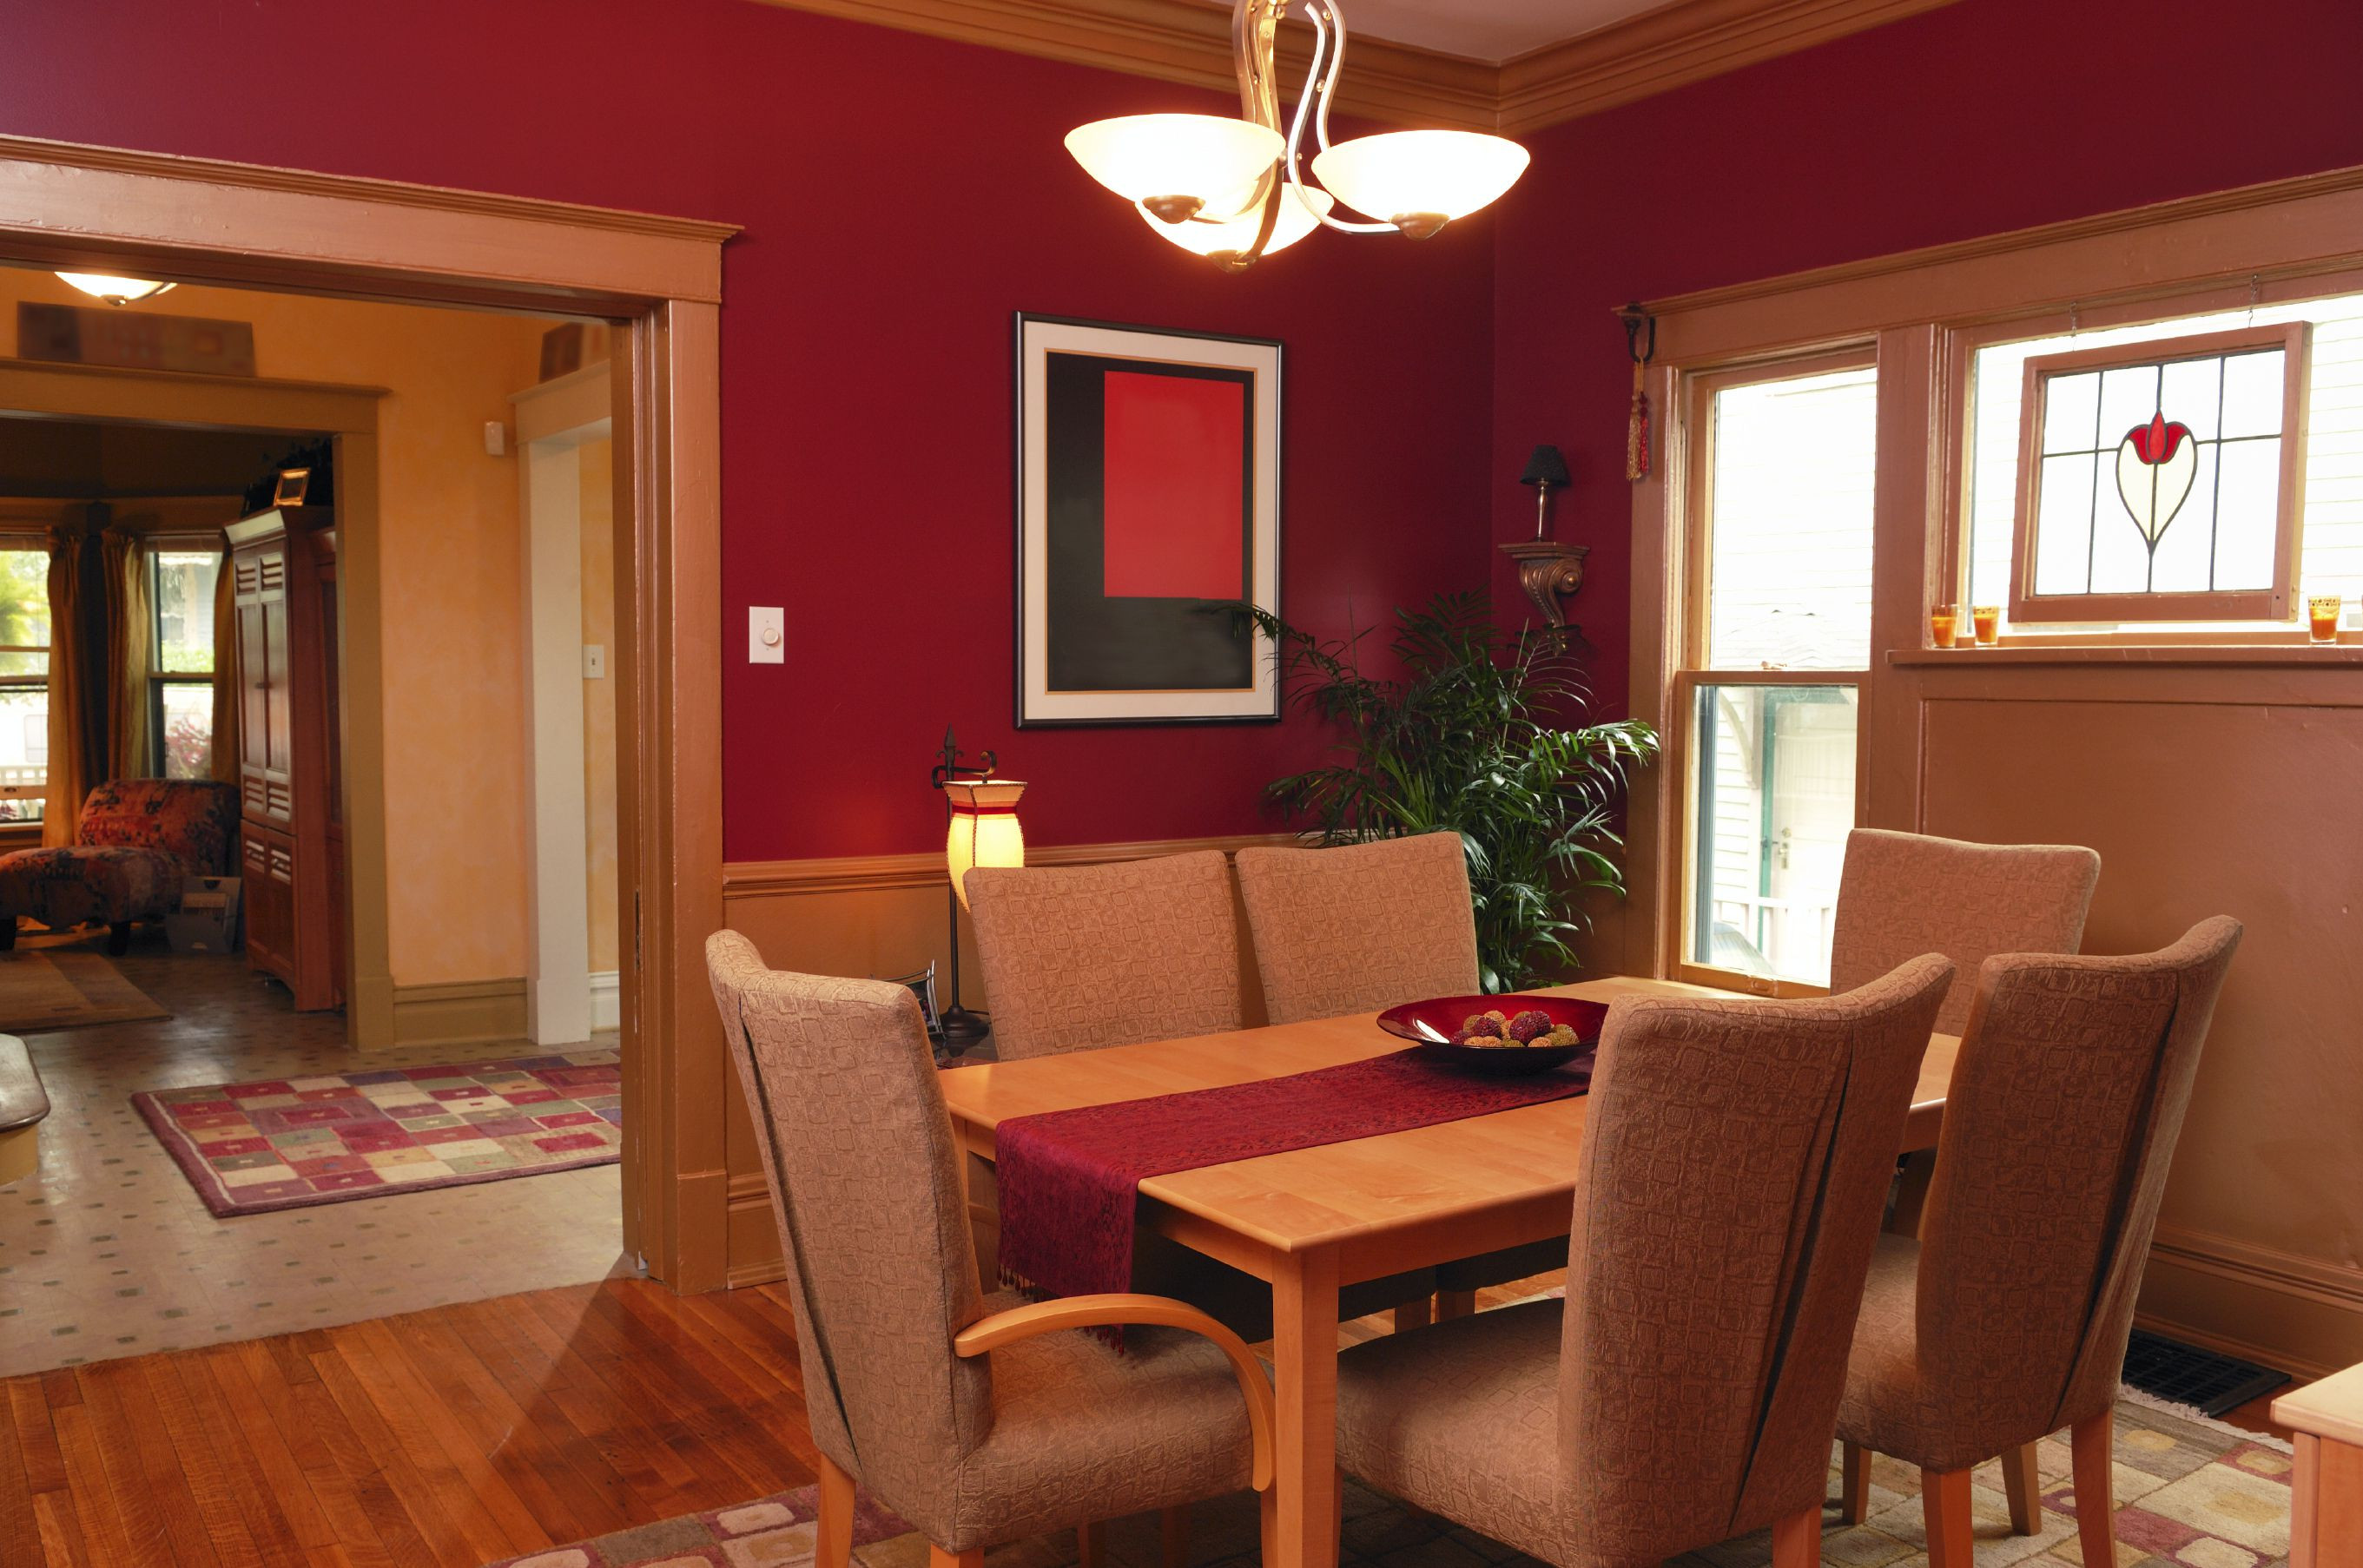 Best ideas about Interior Paint Colors . Save or Pin Interior Paint Colors Mistakes You Must Avoid Amaza Design Now.